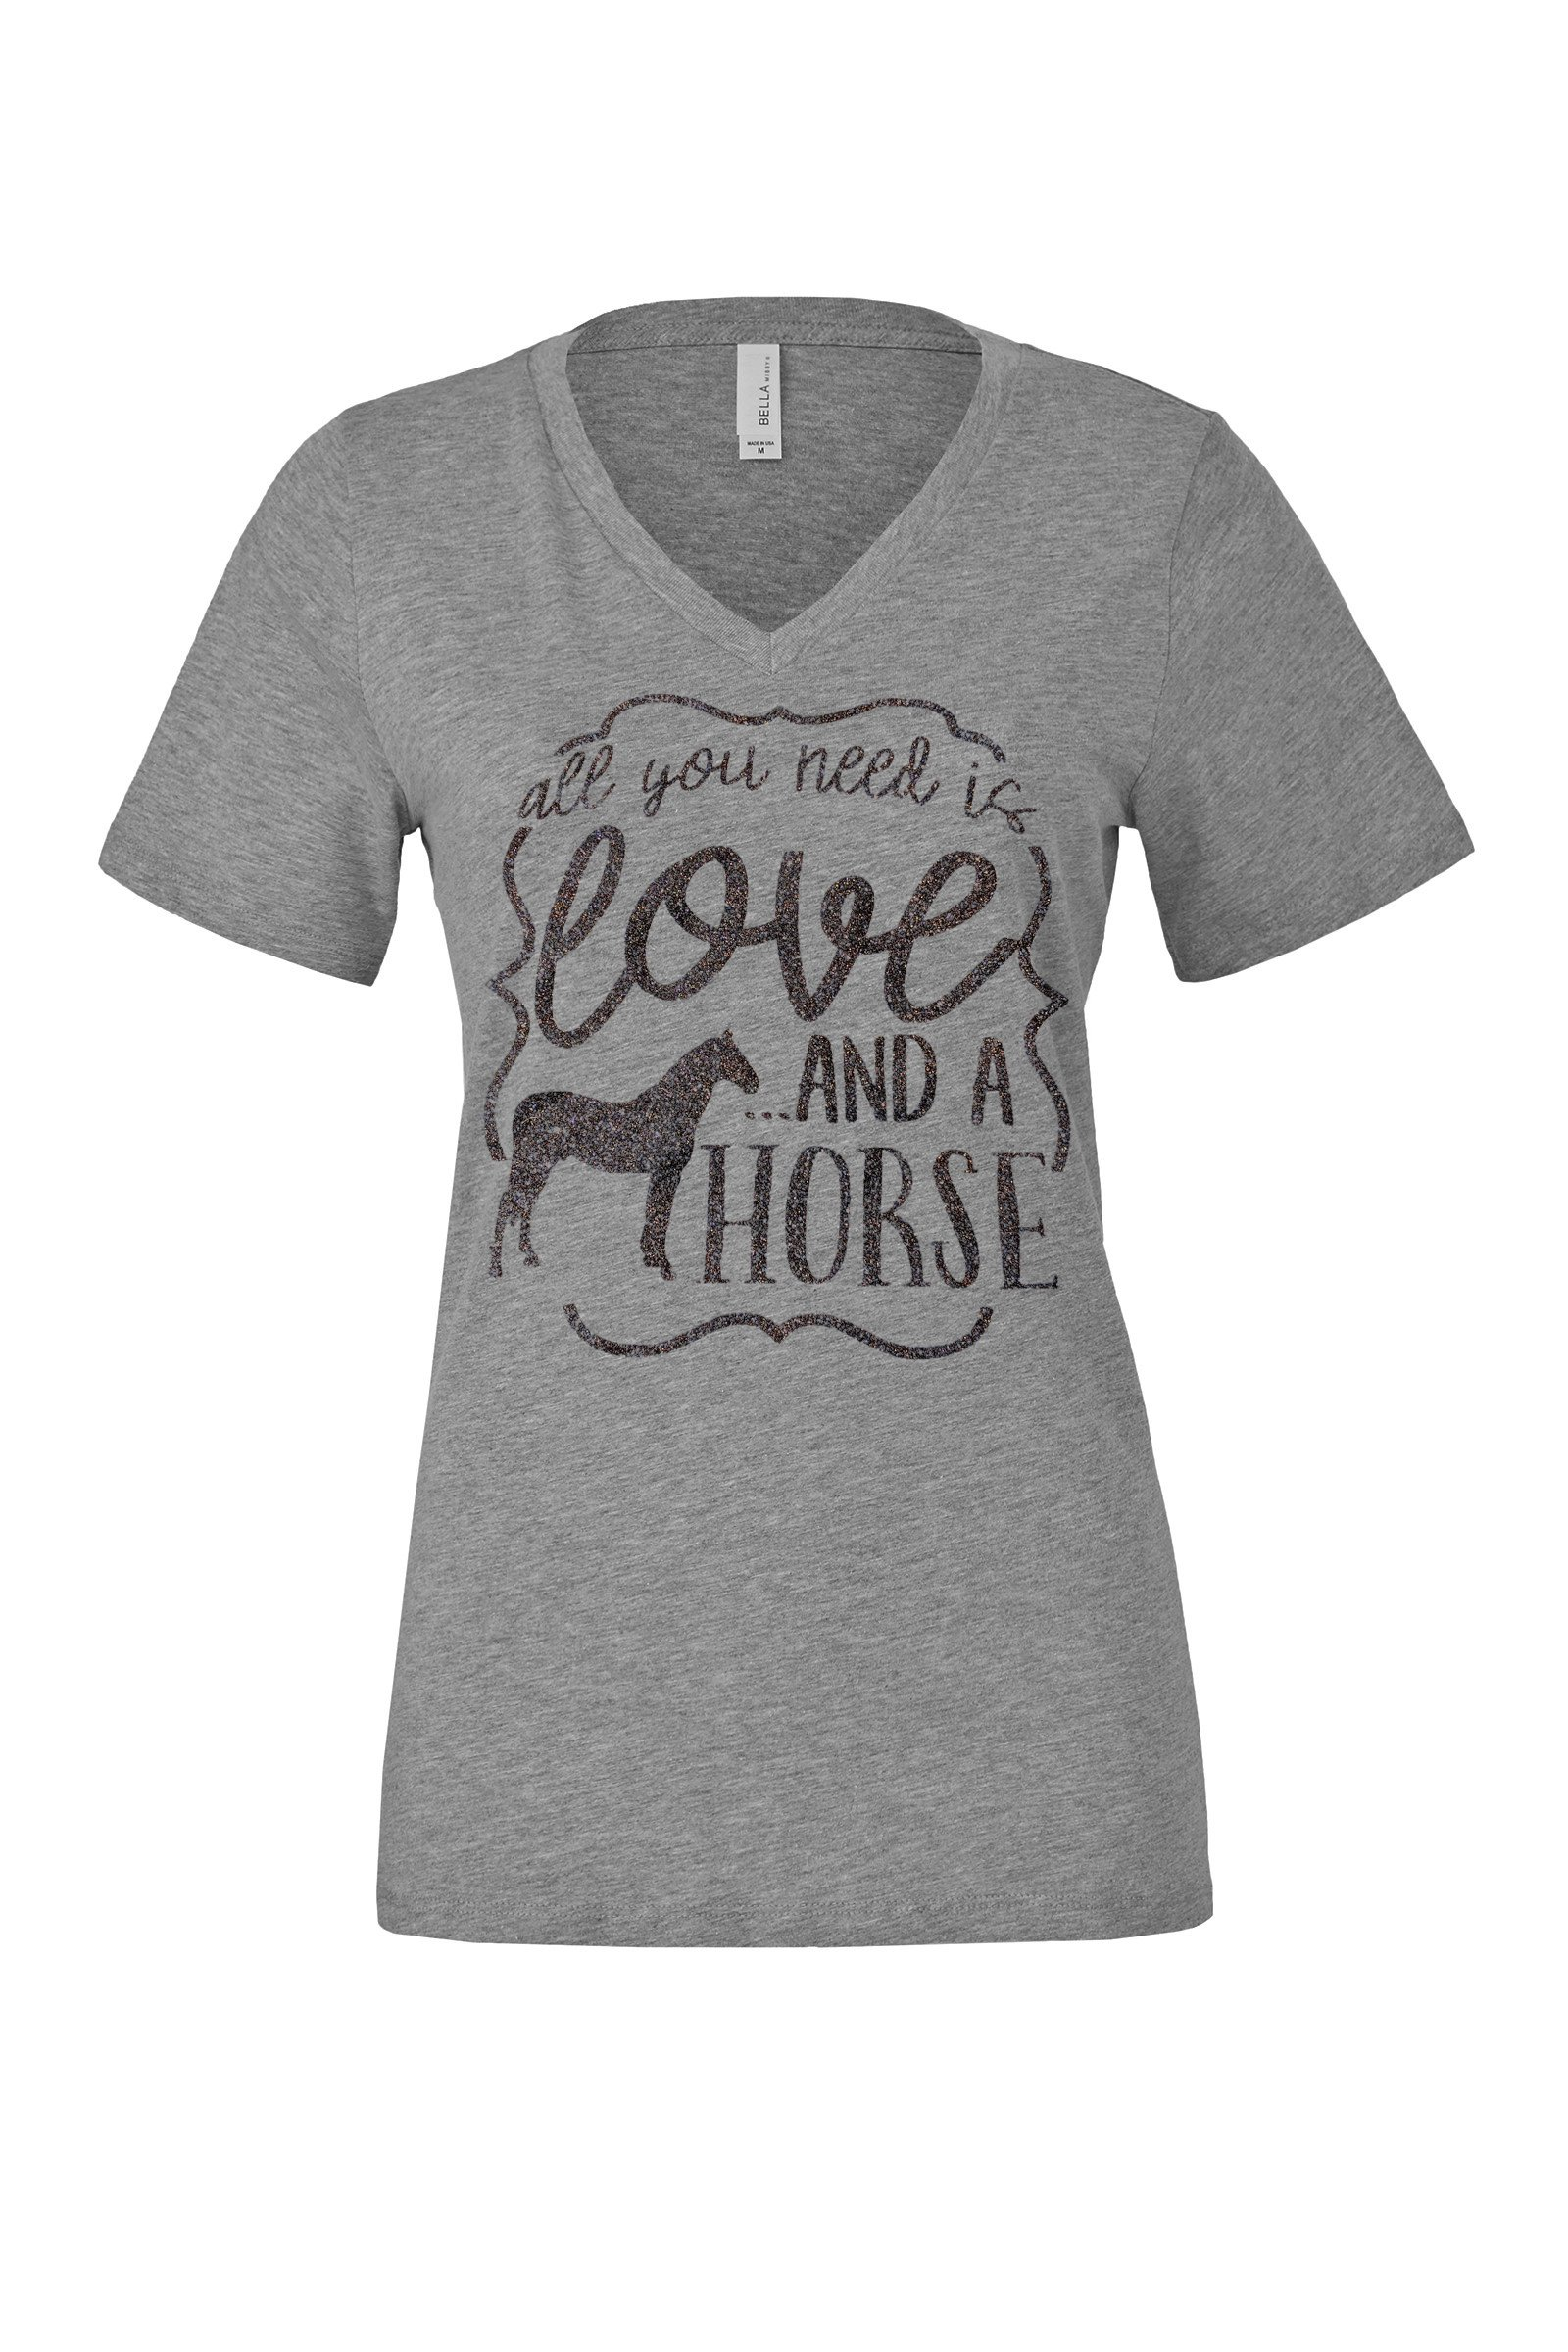 Loaded Lids Women's, Horse, All You Need is Love and a Horse, V Neck T-Shirt (Large, Grey/BlackGlitter)